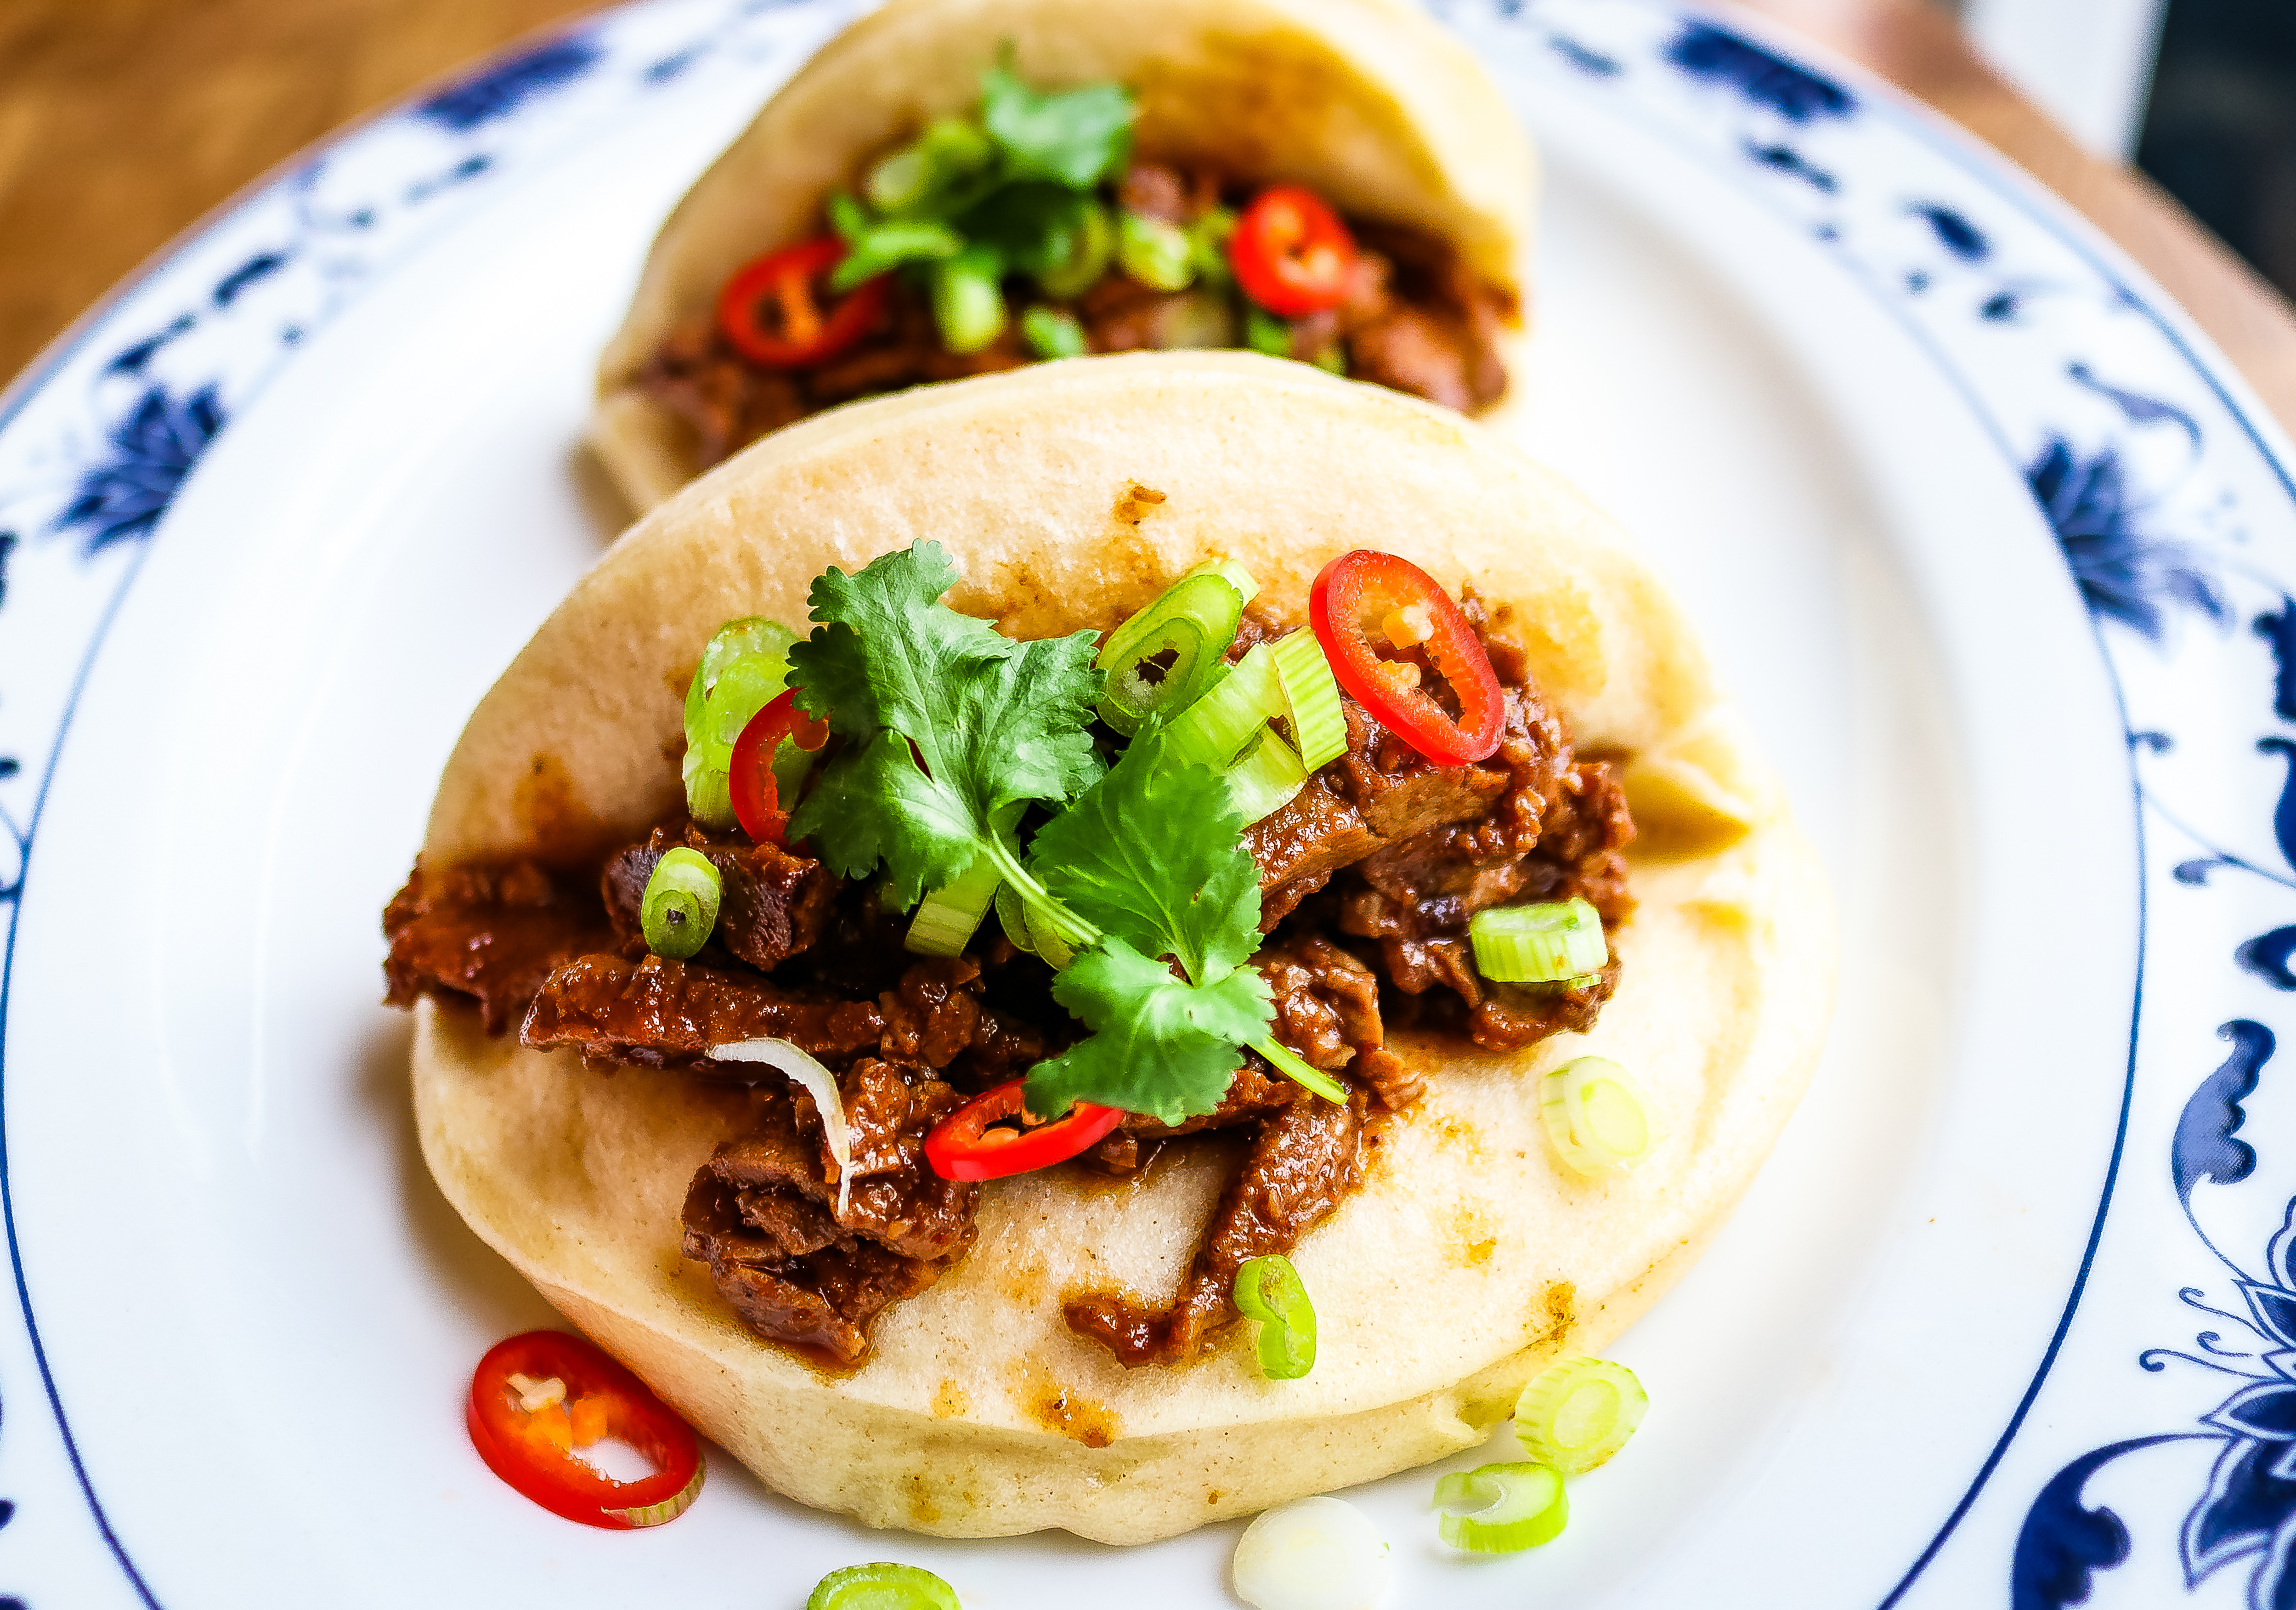 Vietnamese Bao Buns with Sticky Smoked Duck